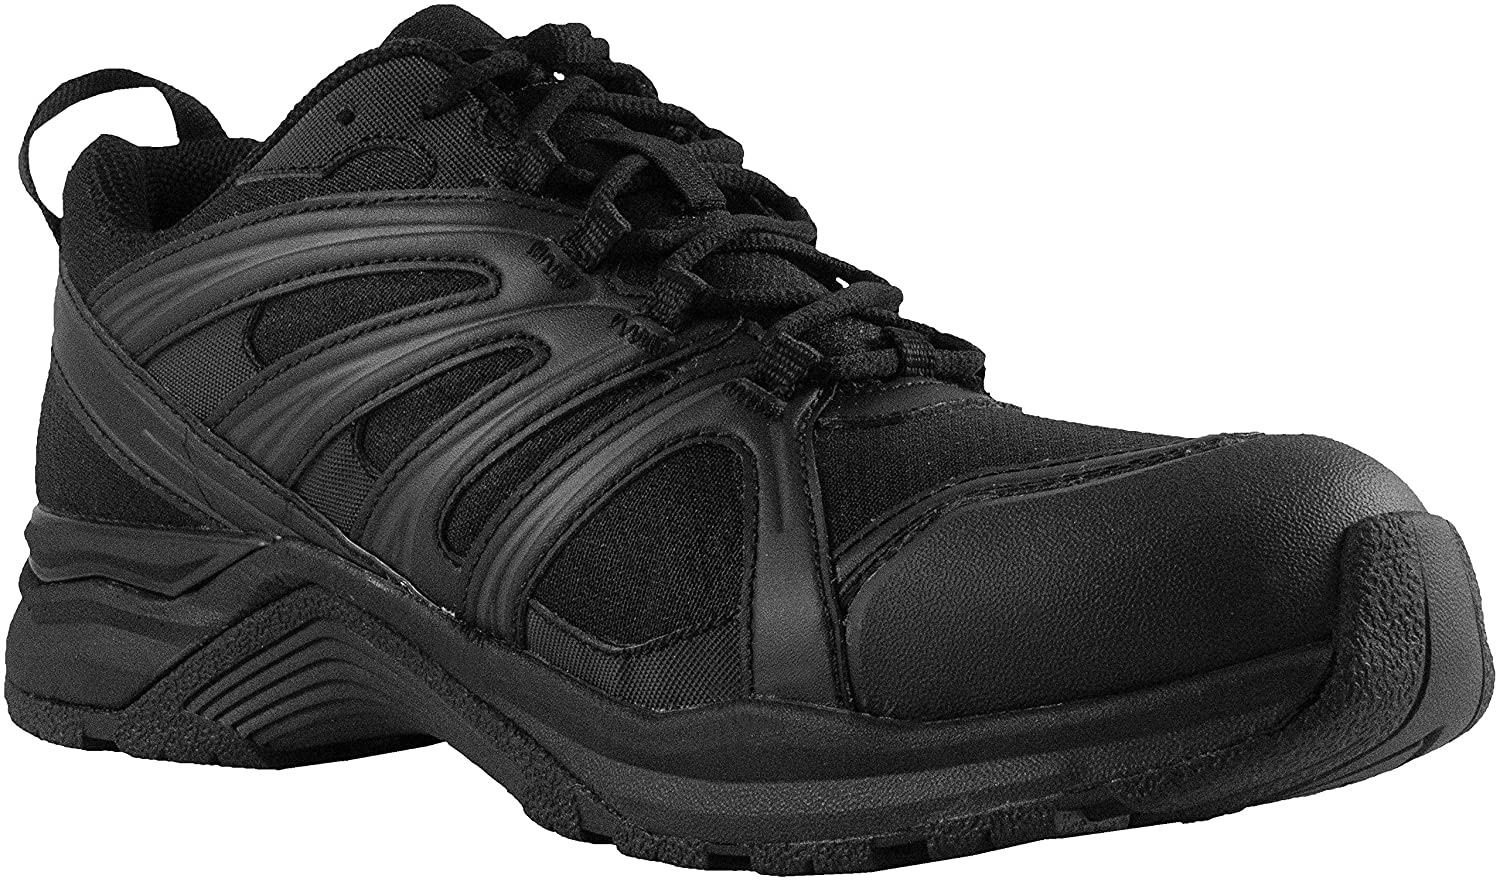 Altama Aboottabad Trail Runner Tactical Low Top Combat Boot B074Q1RW63 7 2E US Black